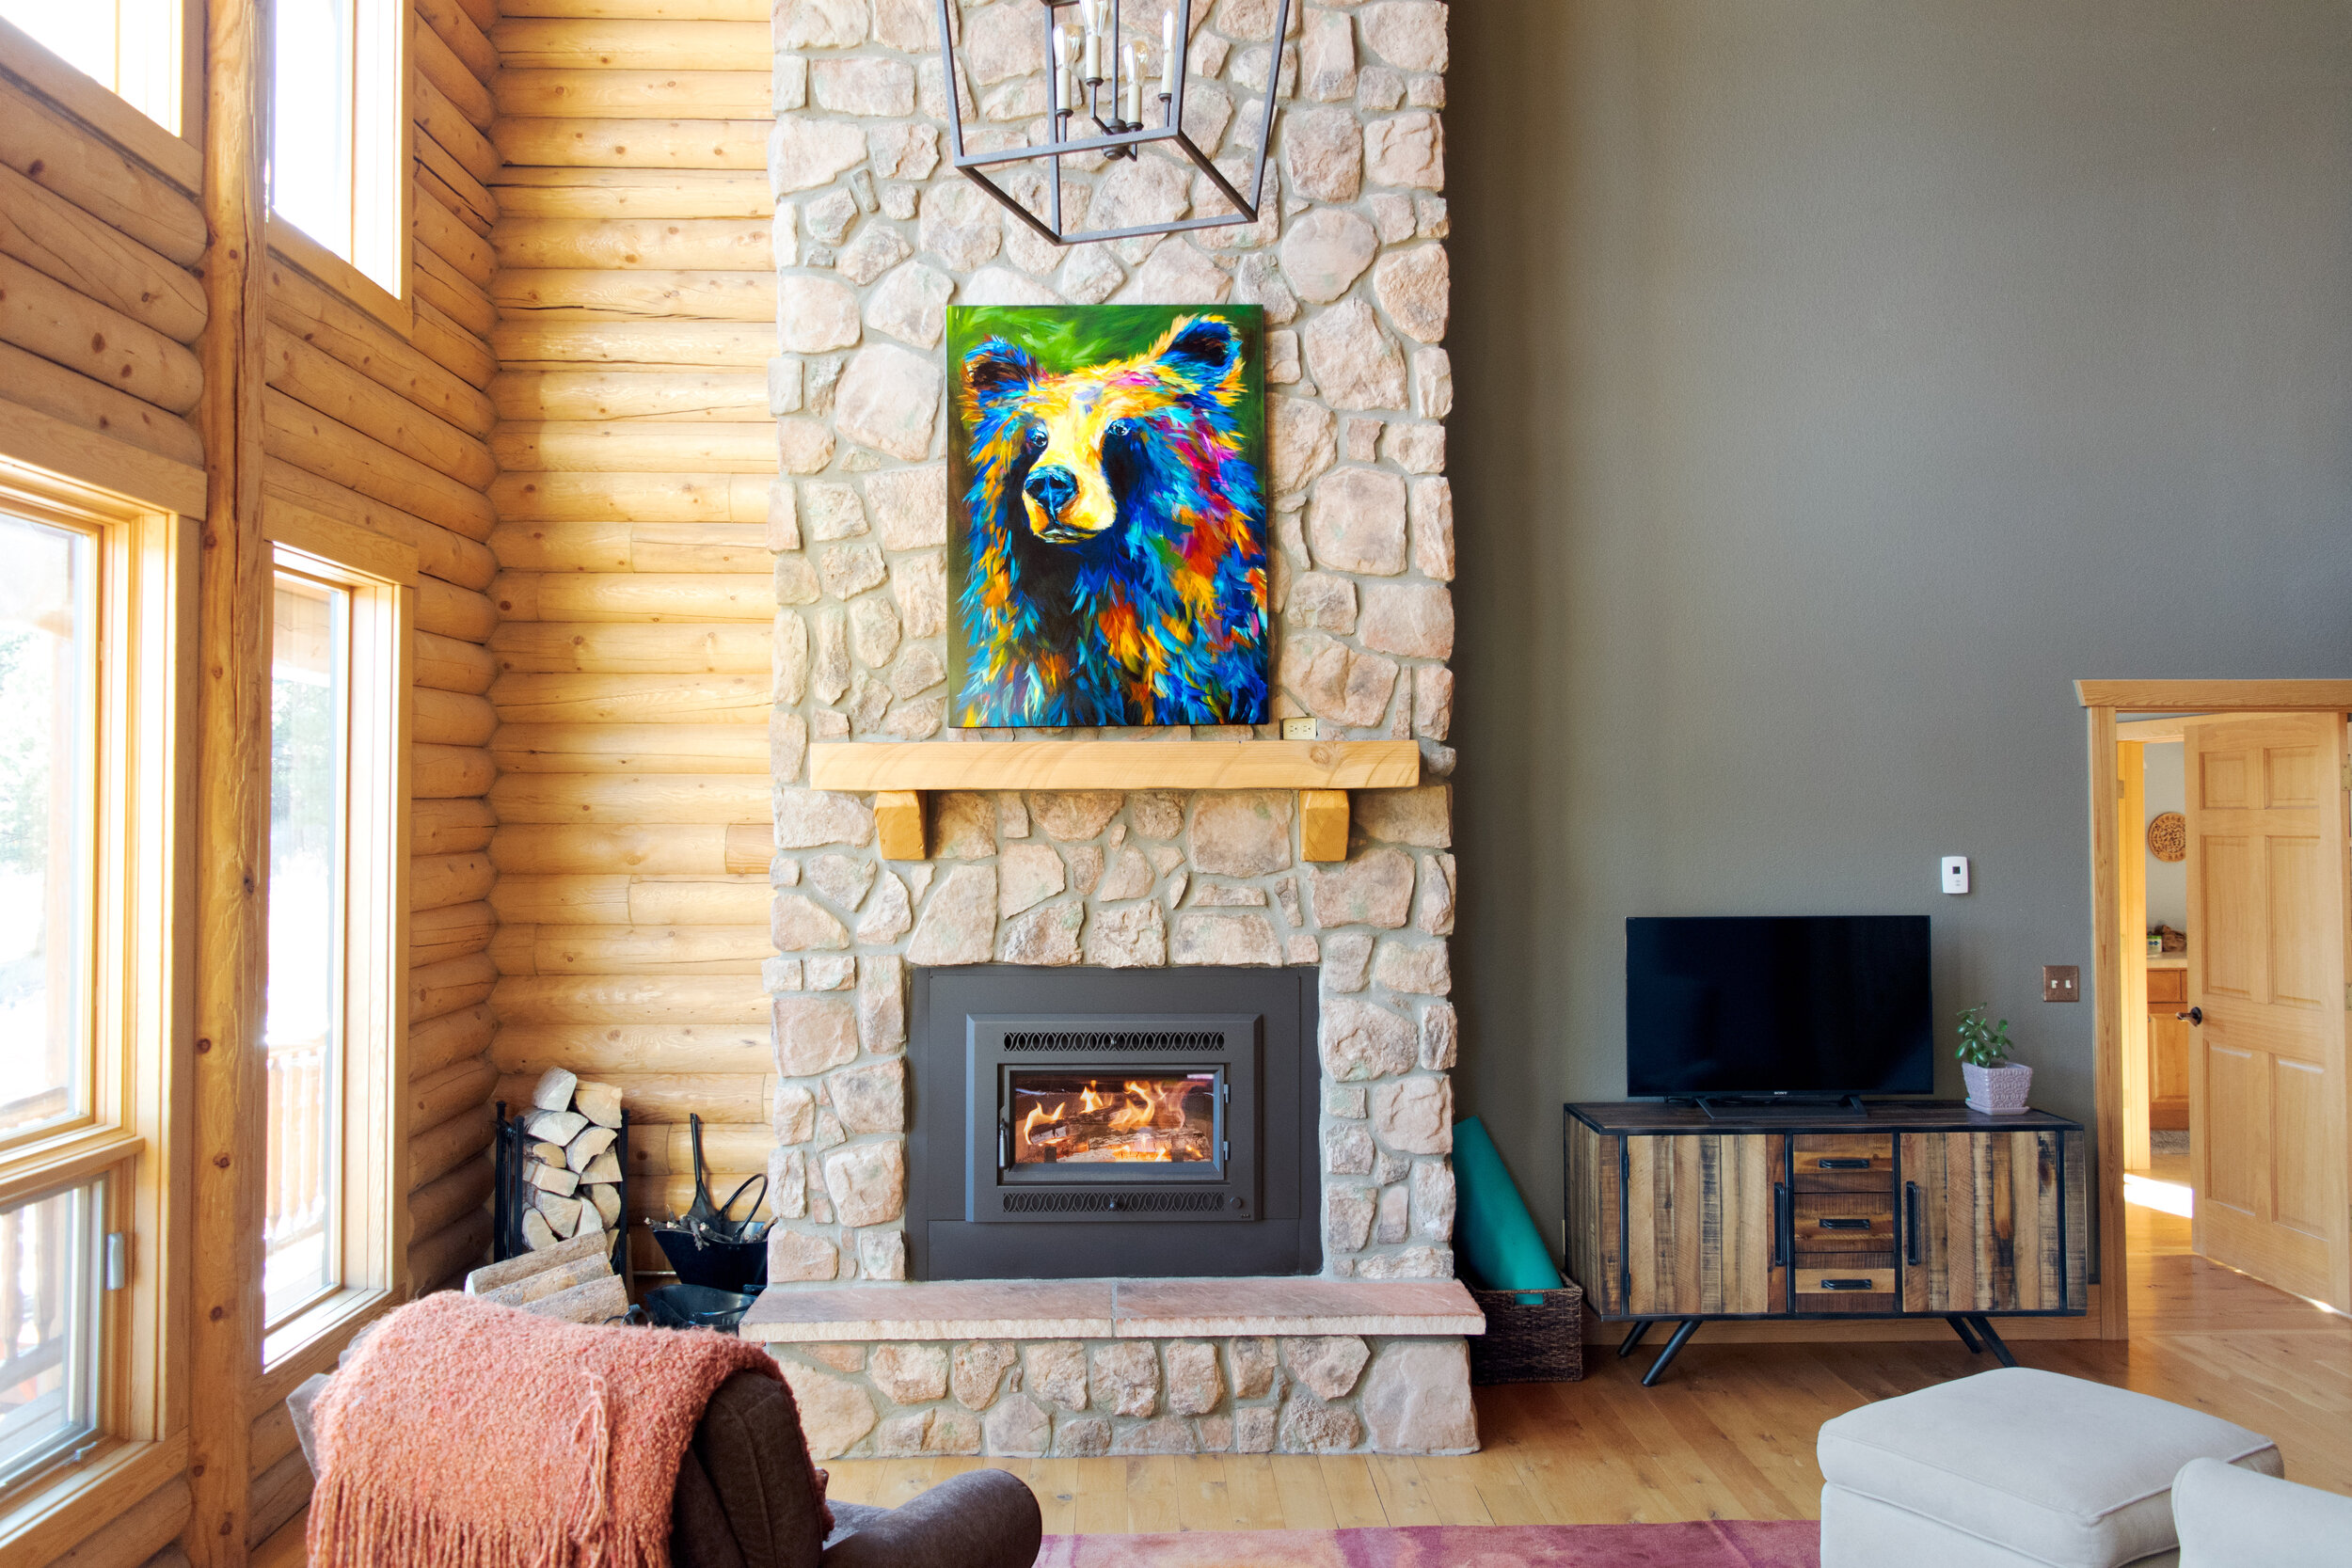 A FireplaceX Medium Flush Wood Insert in a mountain home with a painting of a bear above the mantel.